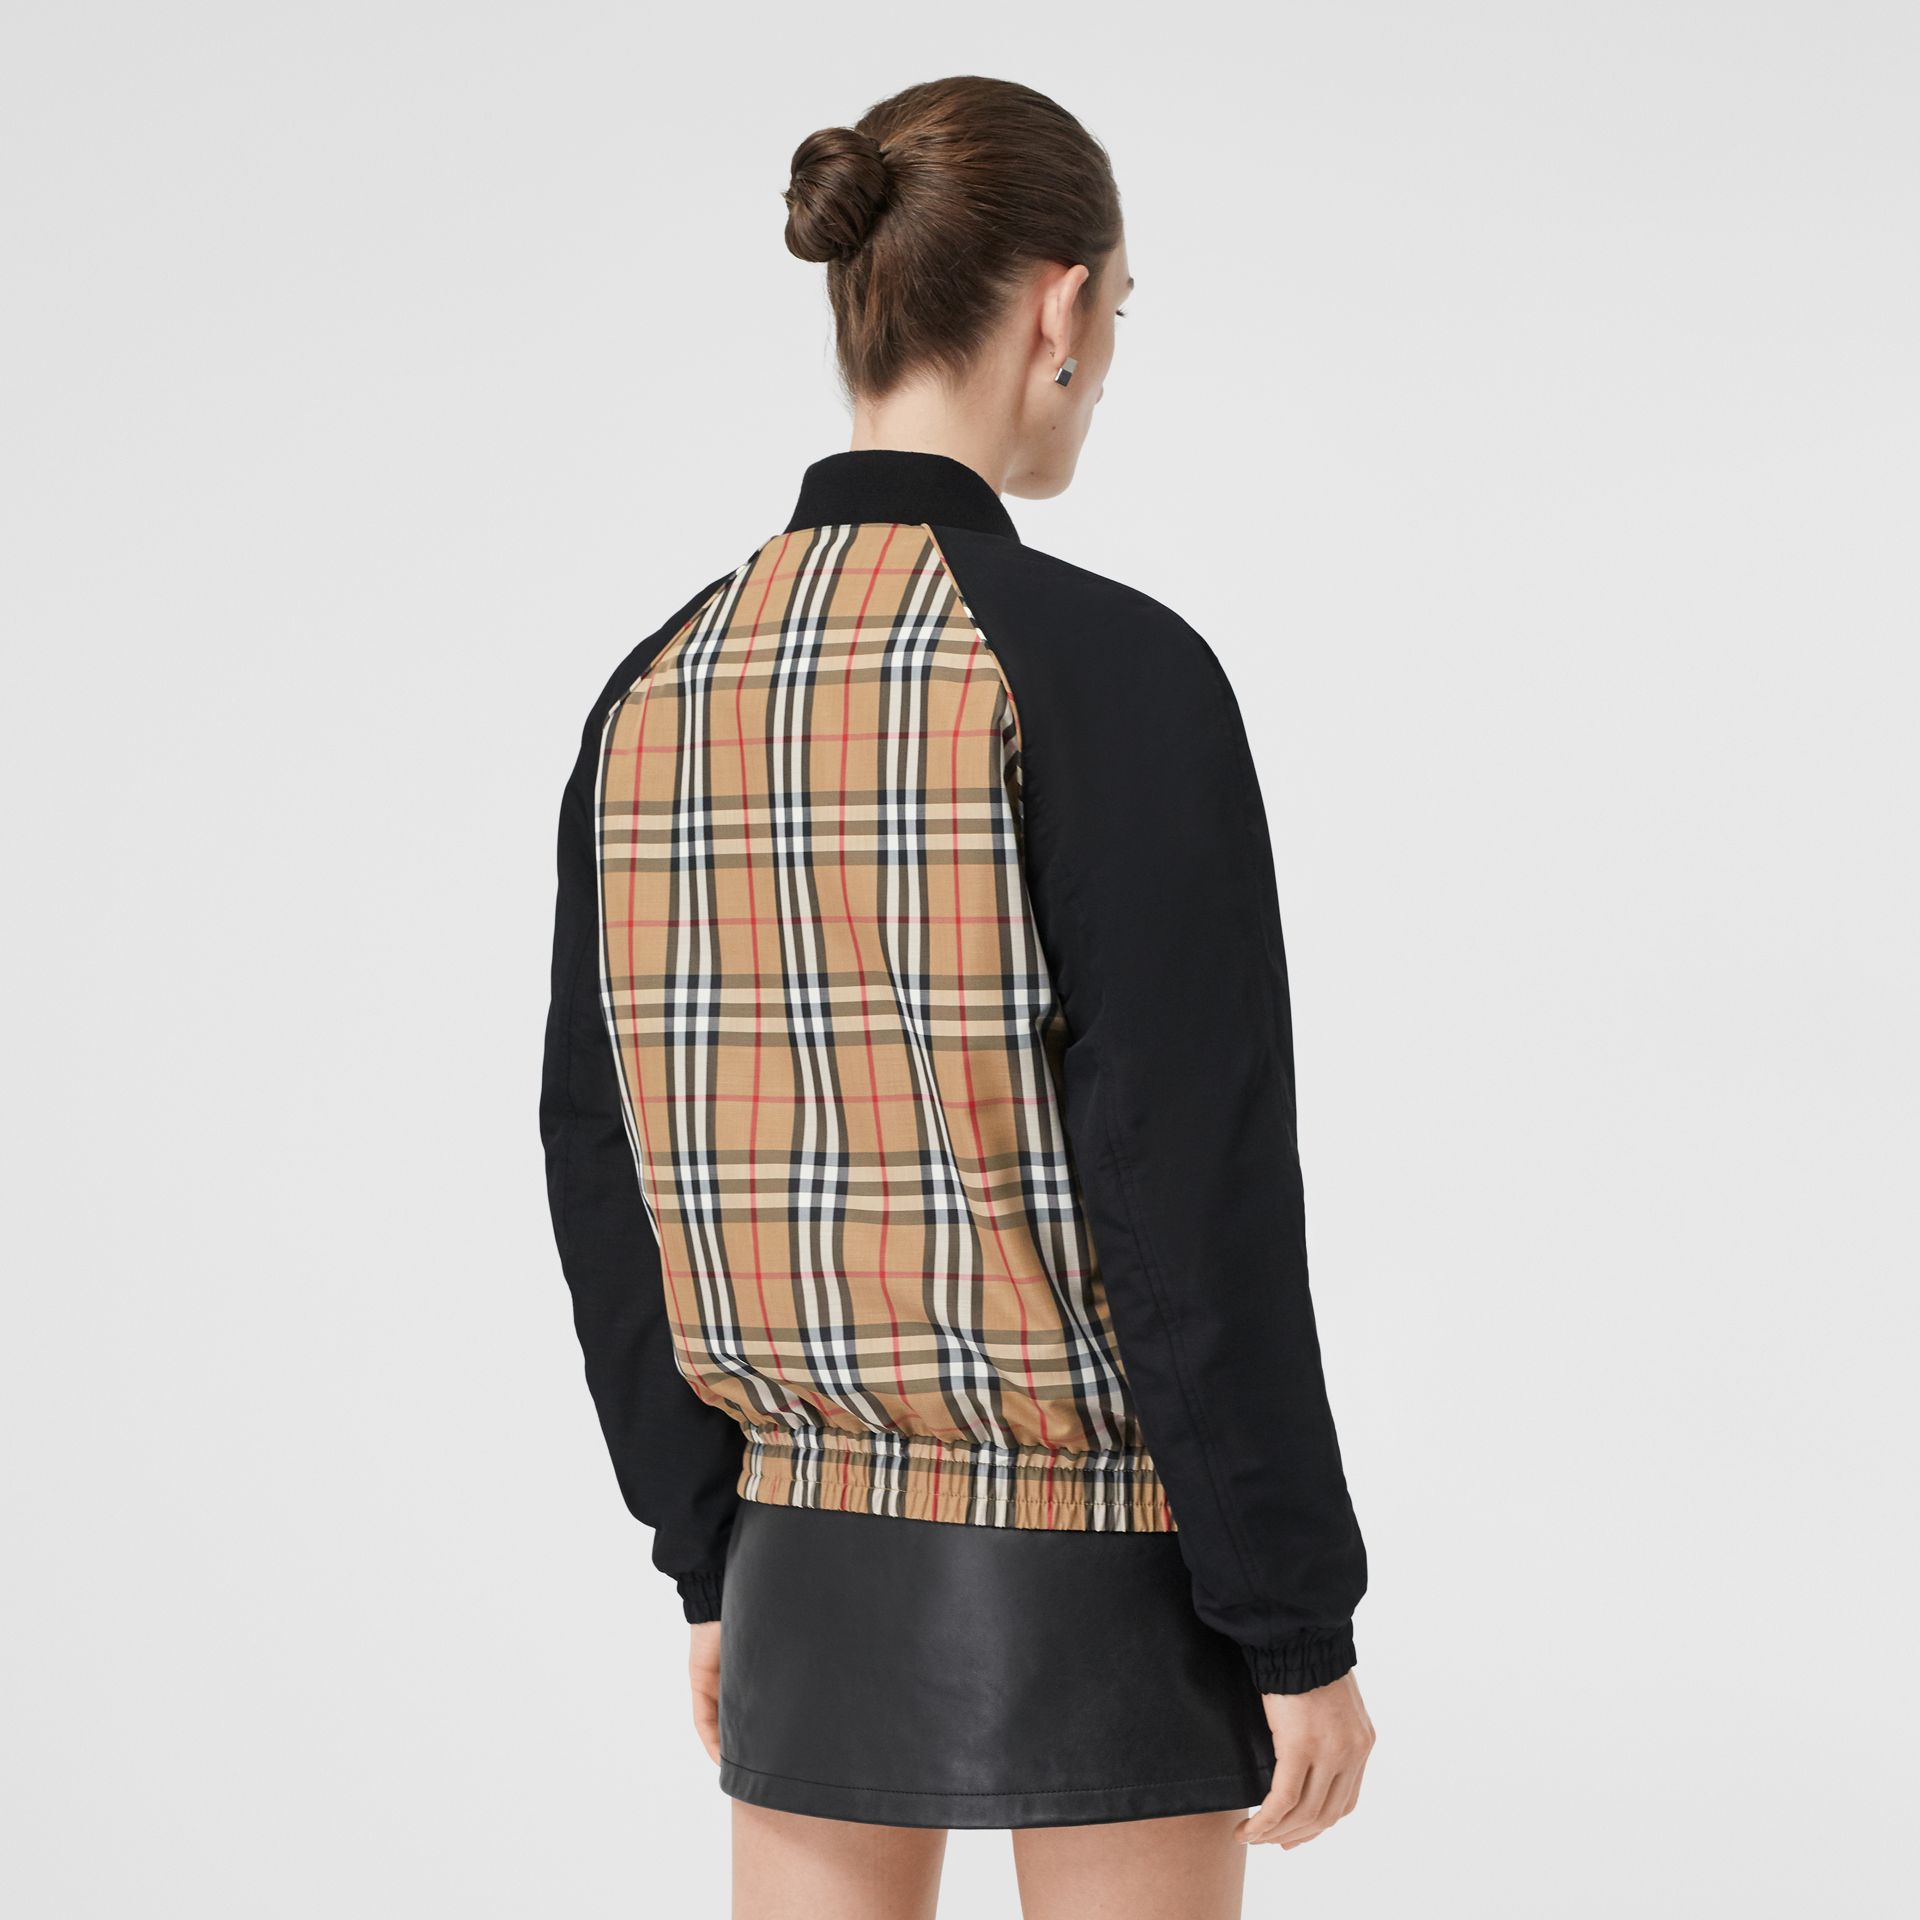 Monogram Motif Vintage Check Bomber Jacket in Black - Women | Burberry United States - gallery image 2